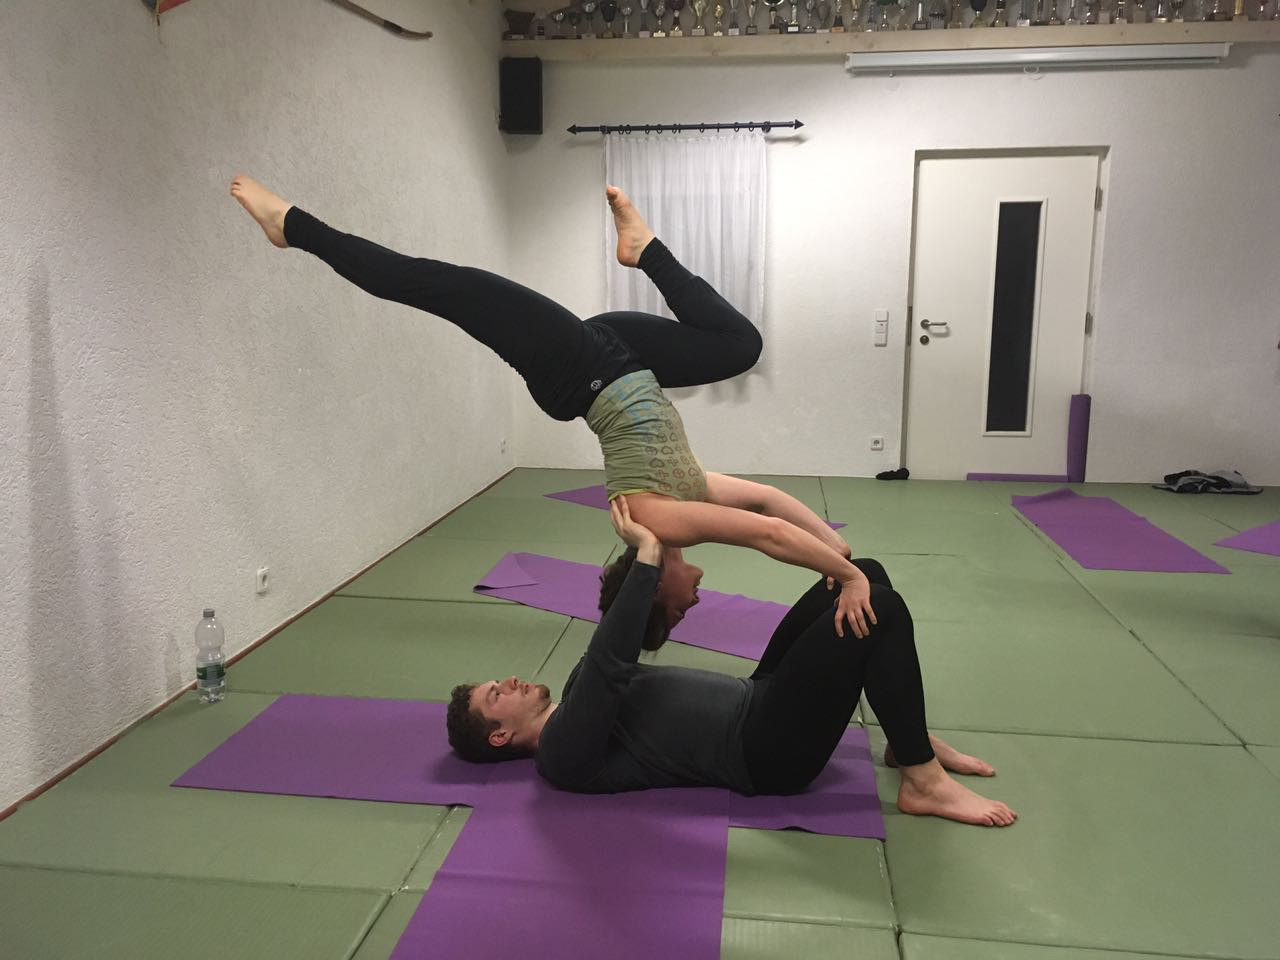 Acrobatic Yoga Washing Machine